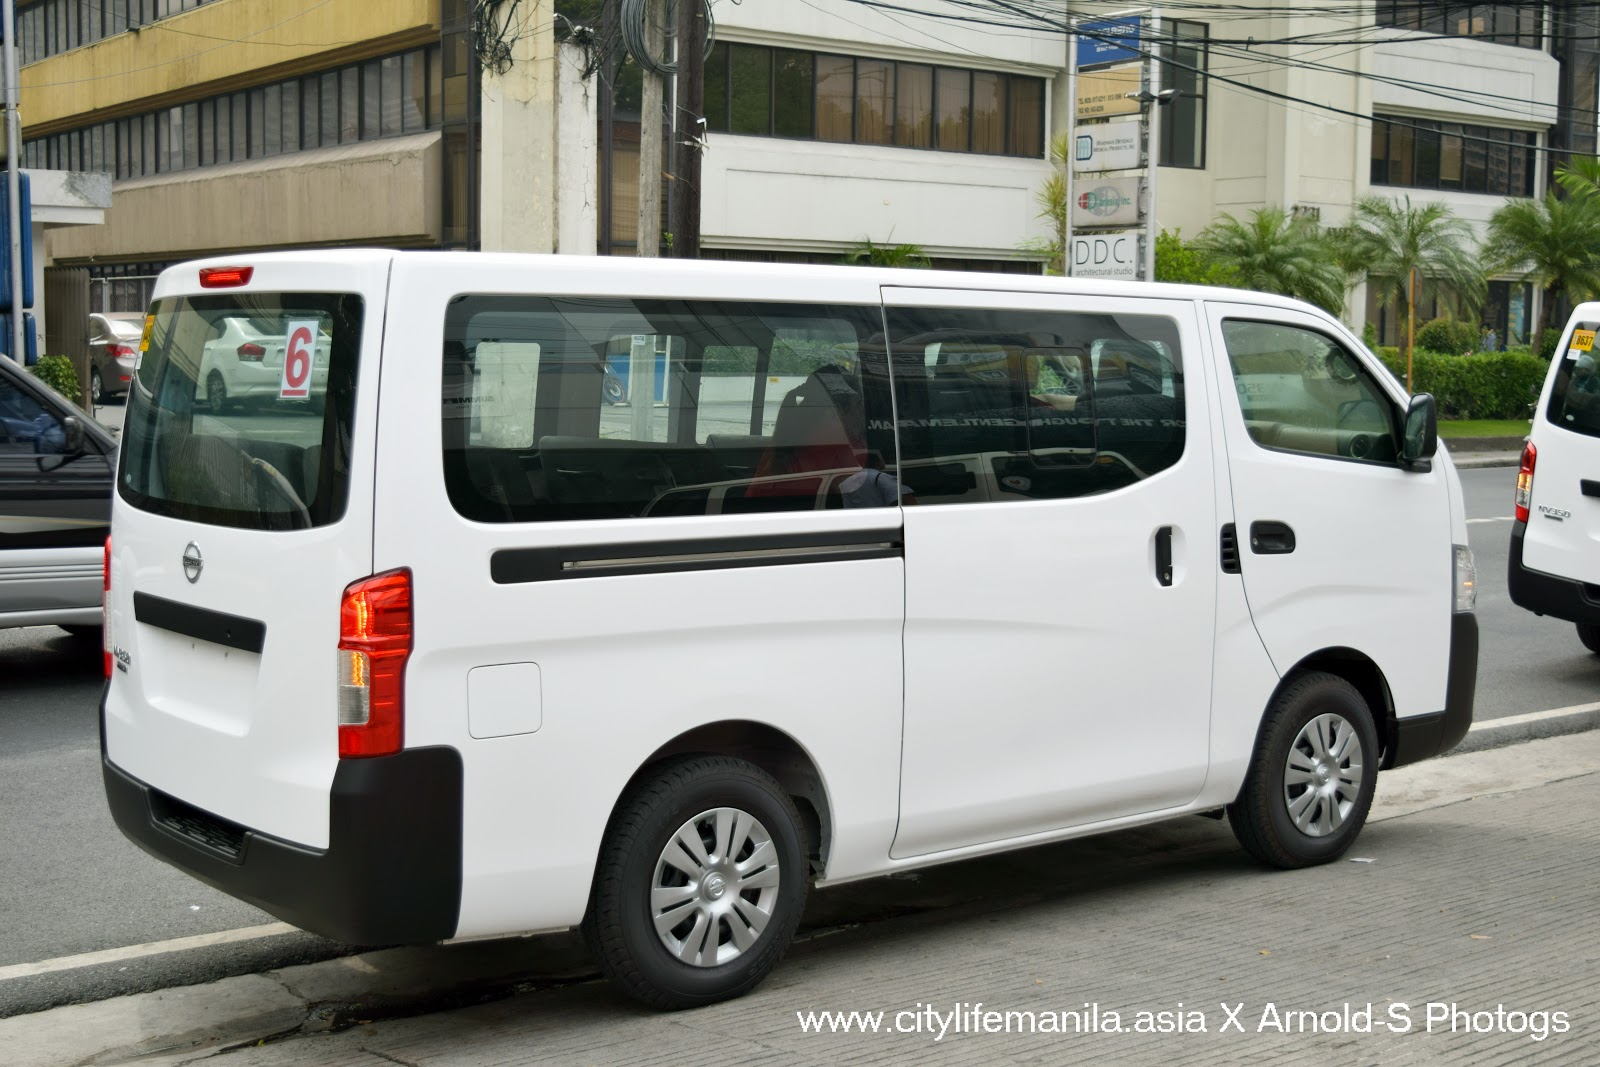 When we are at the skyway going to south luzon expressway i observed that the engine in this van is powerful having a 129 horsepower its not a common for